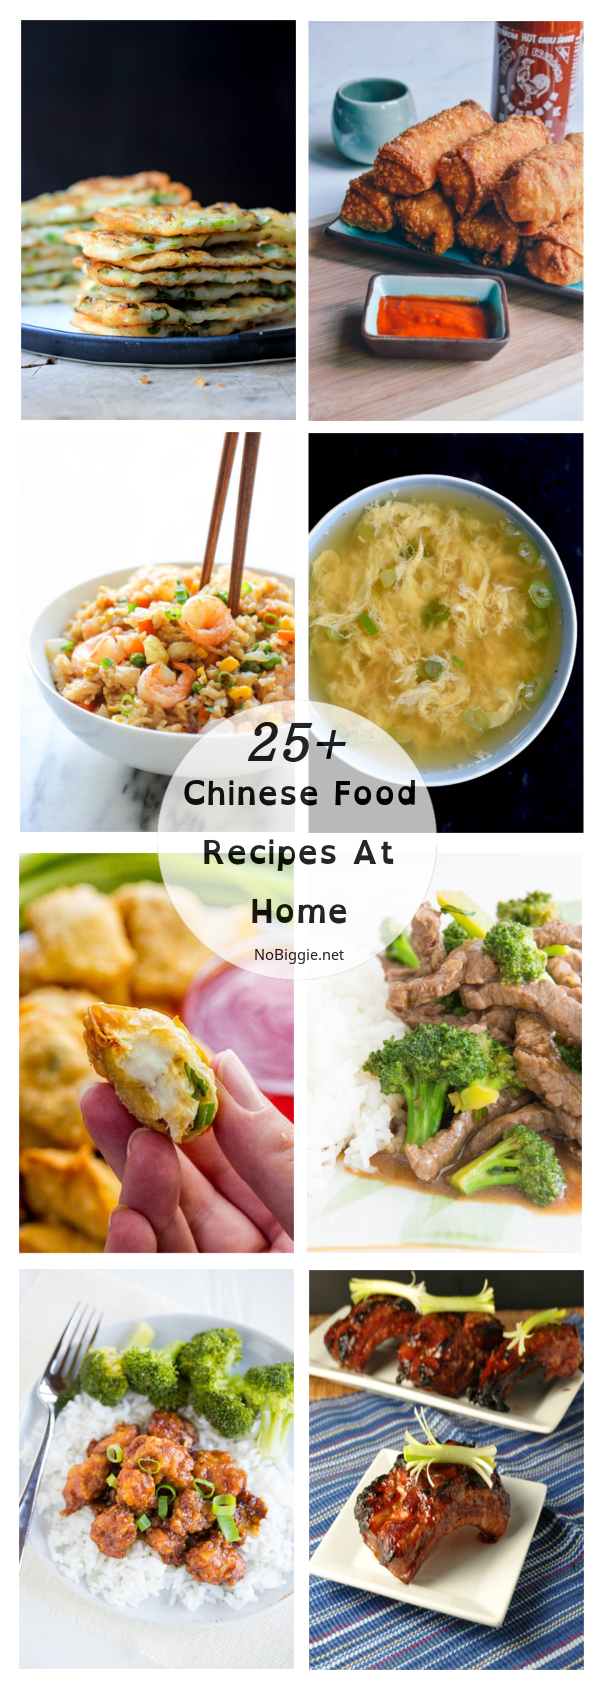 25+ Chinese Food Recipes at Home | NoBiggie.net